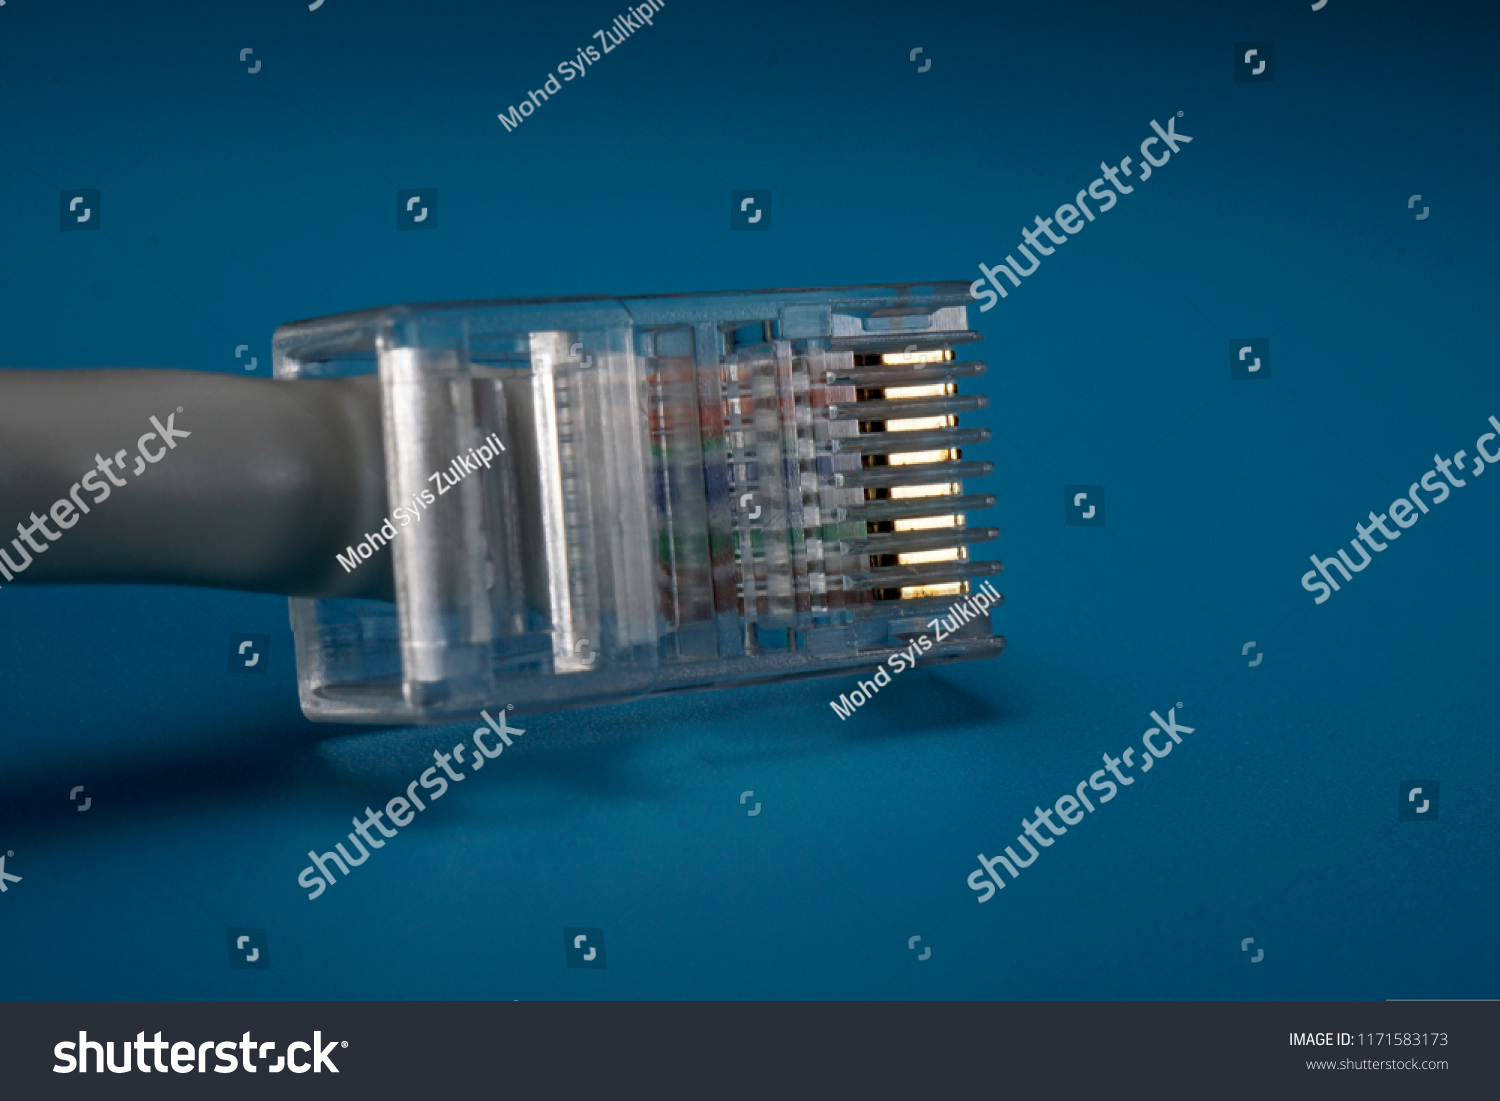 Lan Network Connection Ethernet Cable Internet Stock Photo Edit Now Rj45 Wiring Diagram Cord Isolated On Teal Background